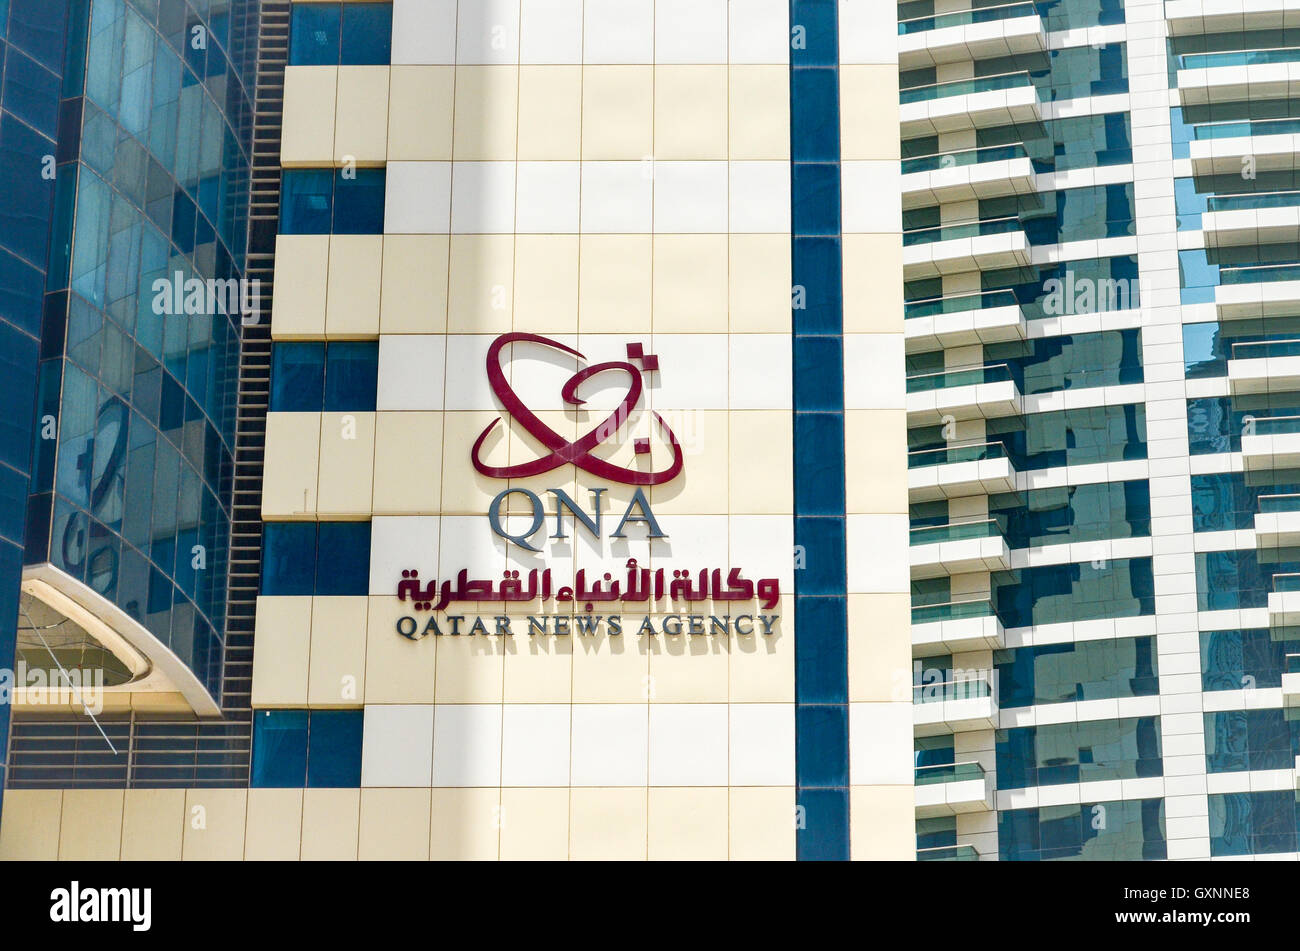 Building of QNA, the Qatar News Agency, in Doha, Qatar - Stock Image